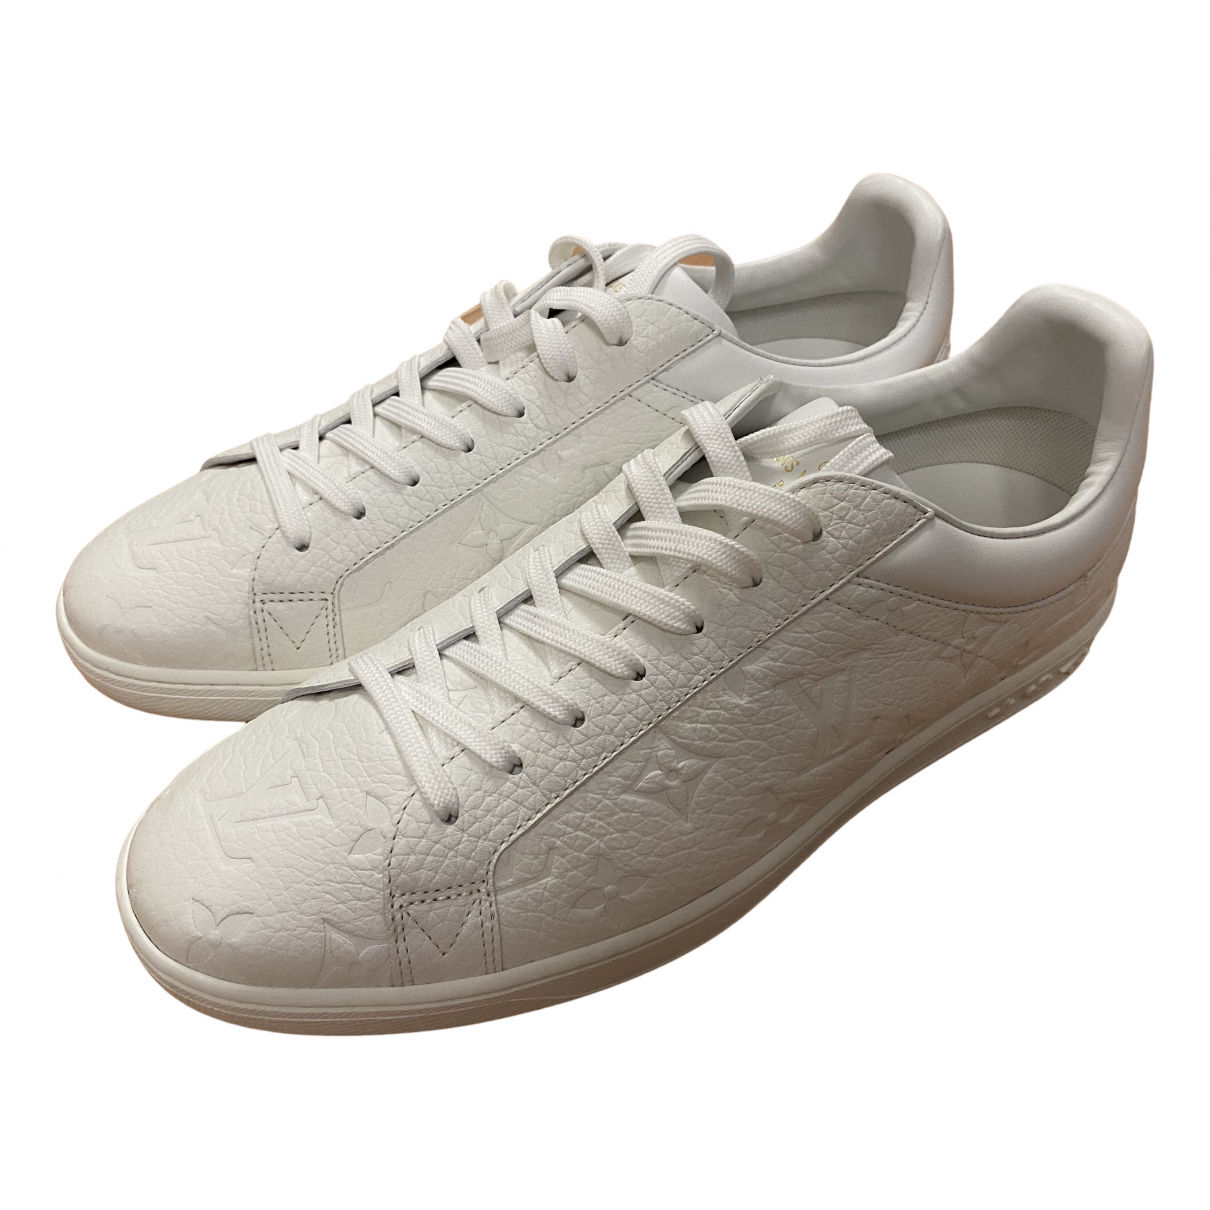 Louis Vuitton Luxembourg Sneakers in  Weiss Leder